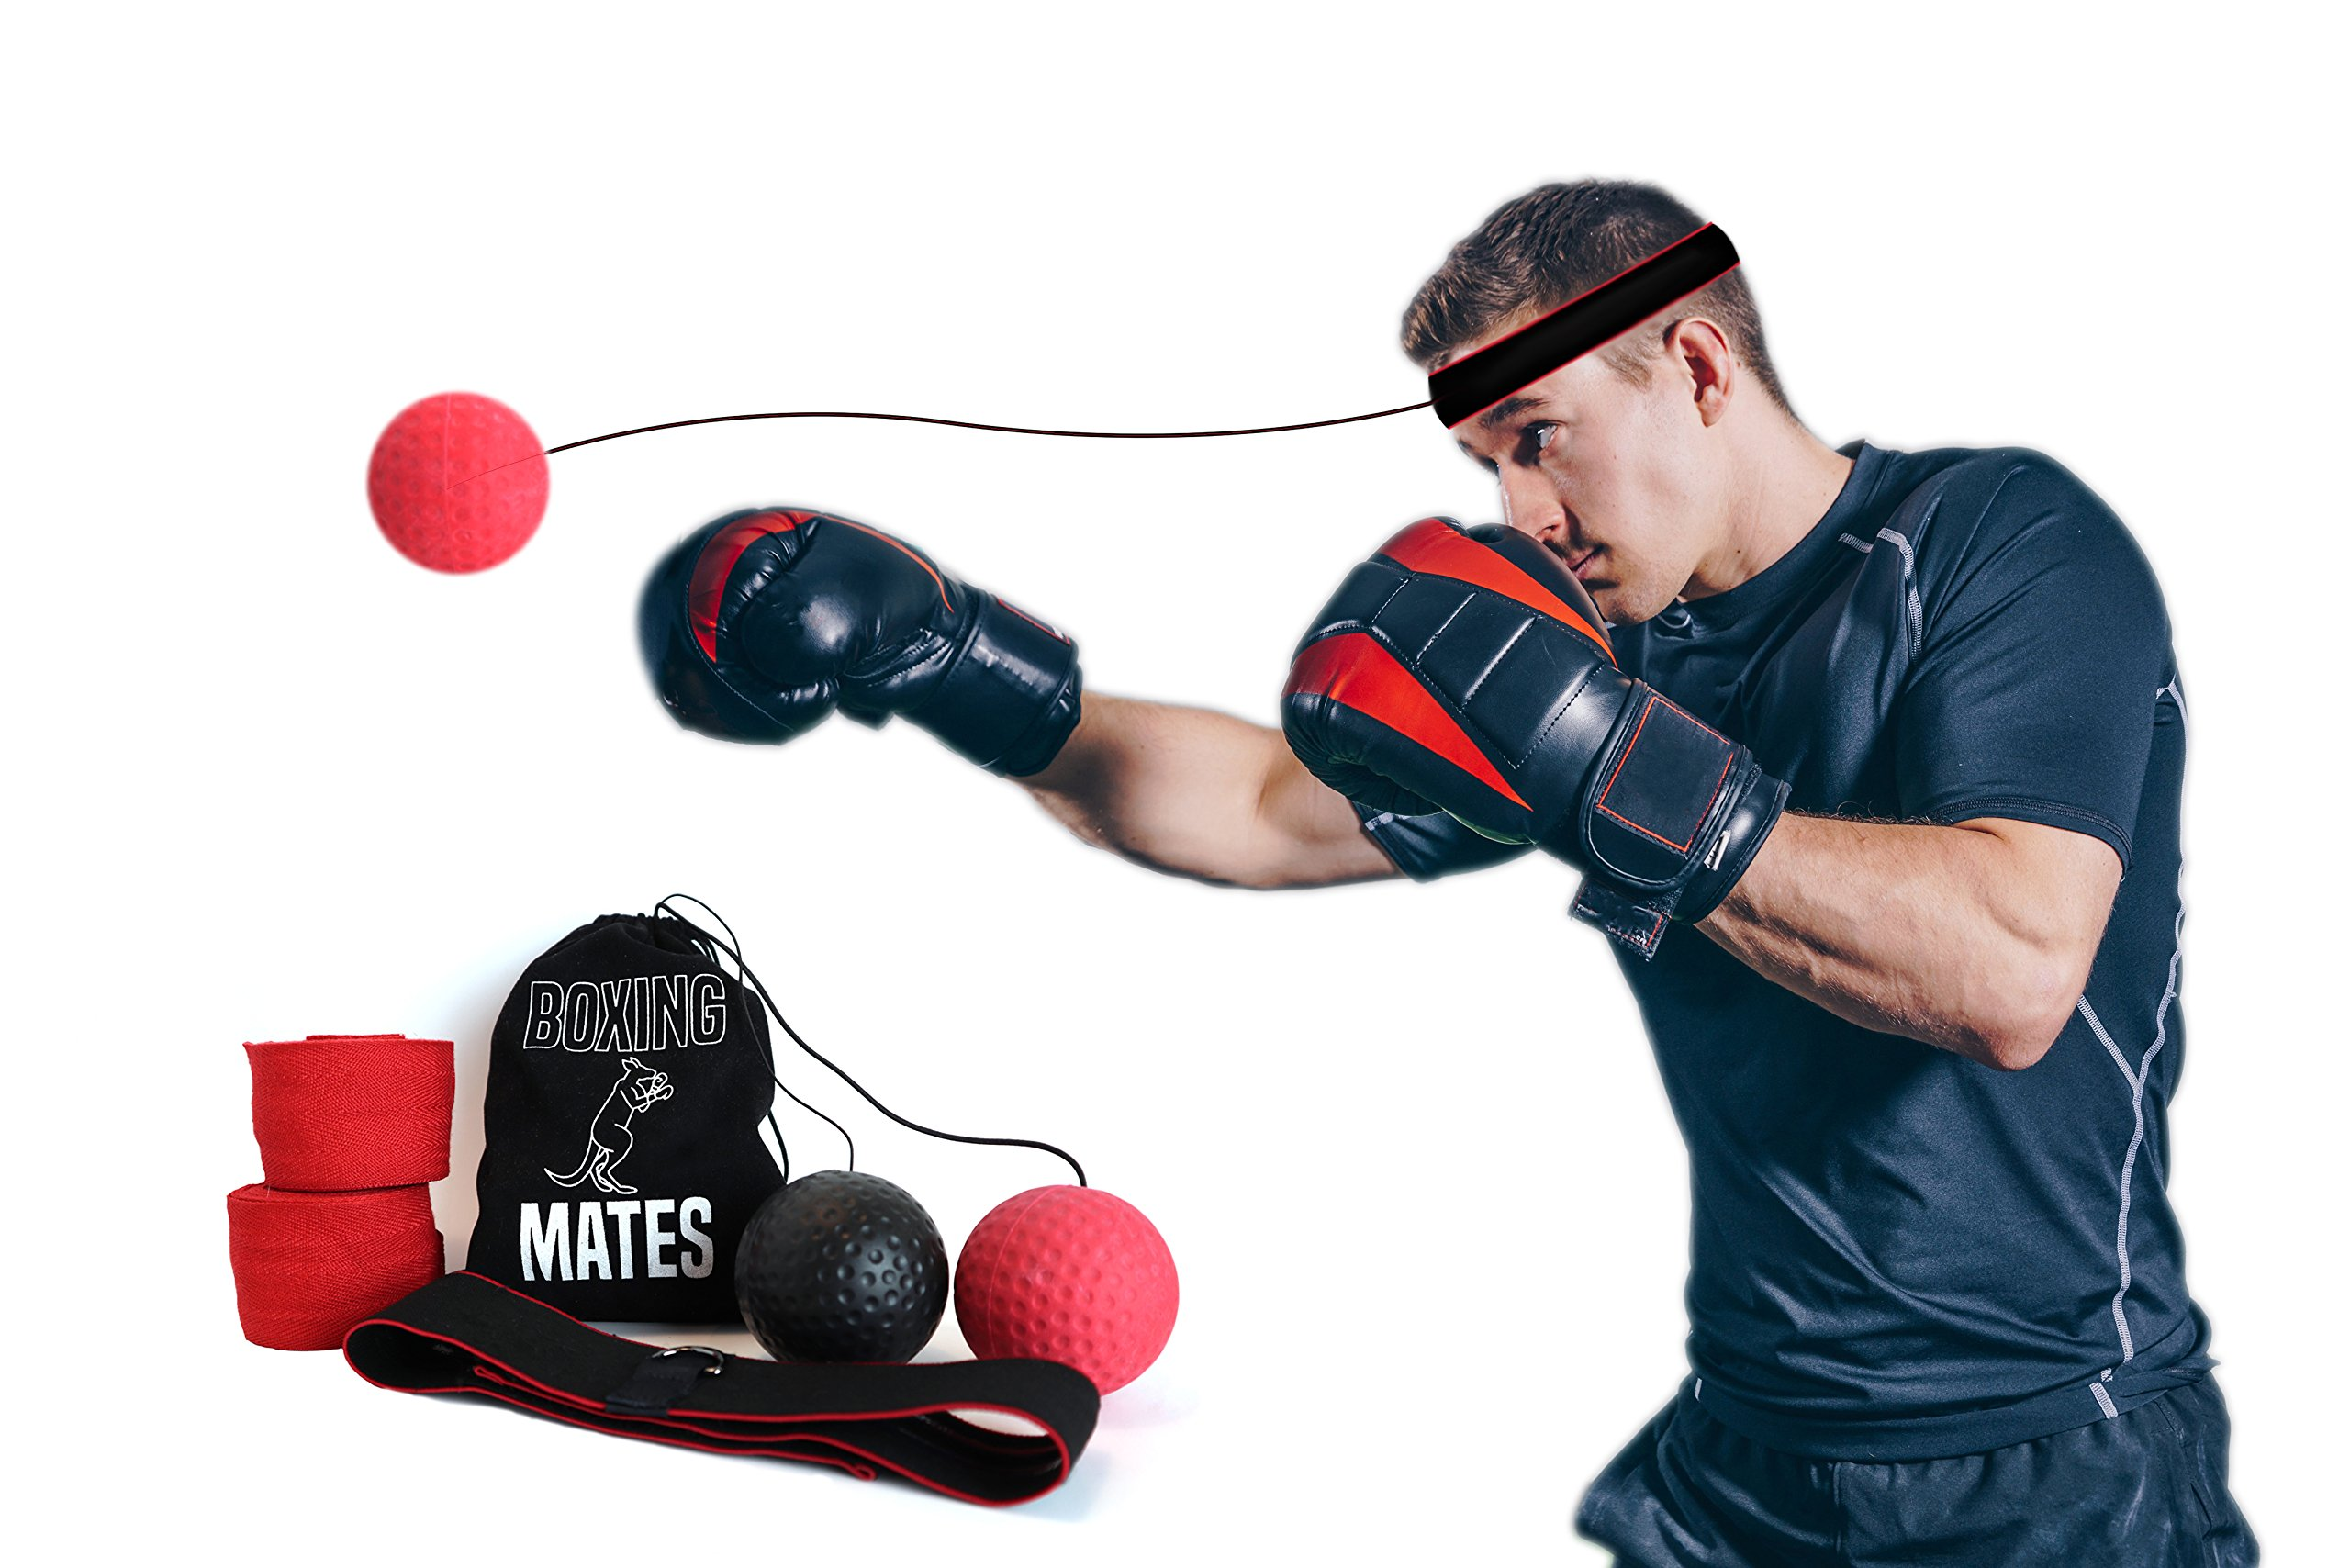 Boxing Mates Boxing Reflex Ball to Improve Hand Eye Coordination with Non-Slip Headband, Adjustable String, Two Training Balls, Hand Wraps, and Travel Pouch by Boxing Mates